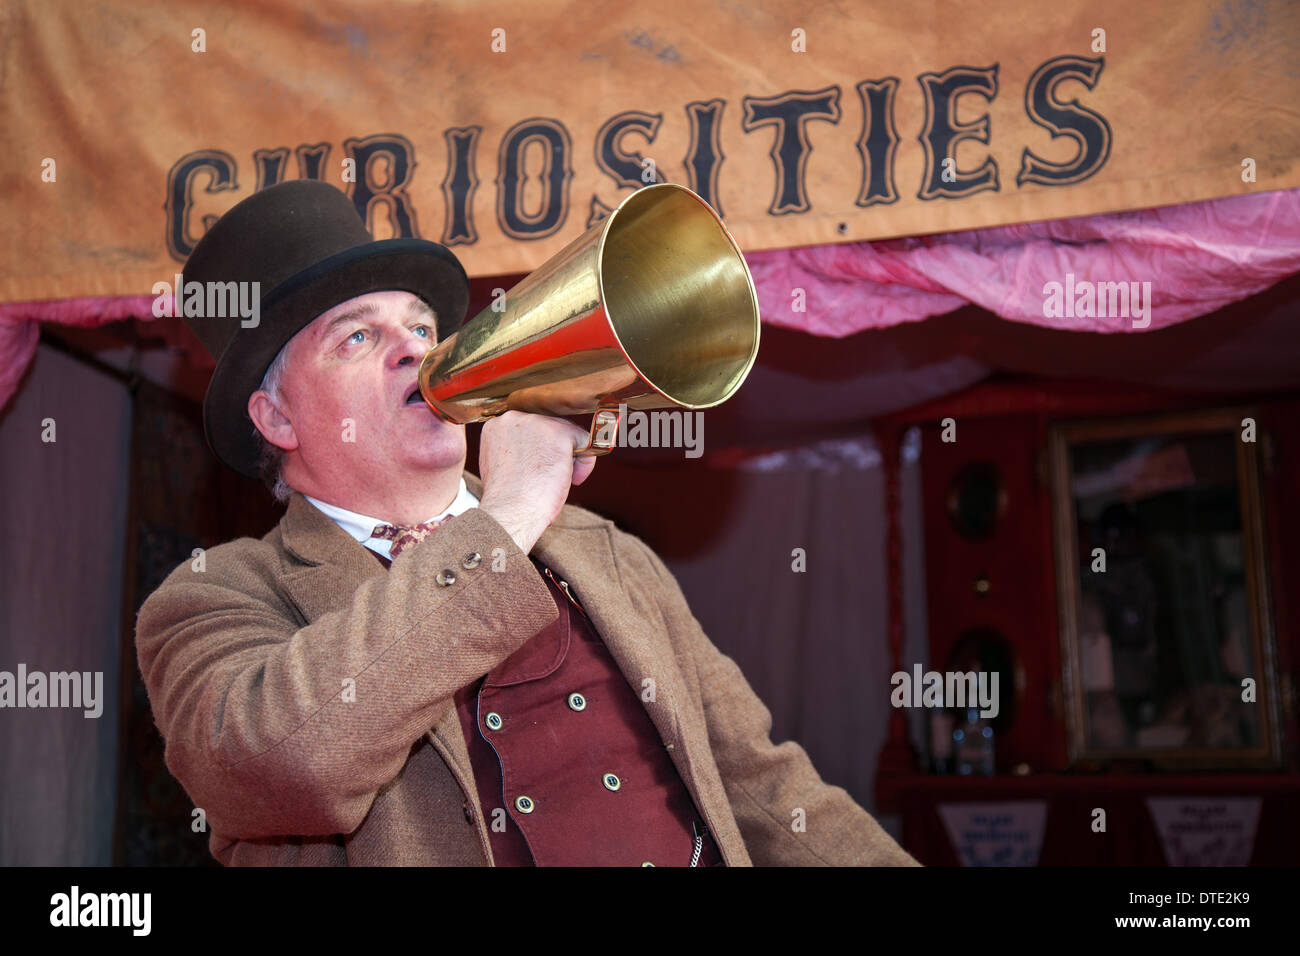 Blackpool, Lancashire, UK 16th February, 2014. Announcing through a brass megaphone, or loudhailer at the opening of the Victorian Palace of Curiosities performing at Blackpooll's annual festival of circus, side show, magic & new variety. - Stock Image